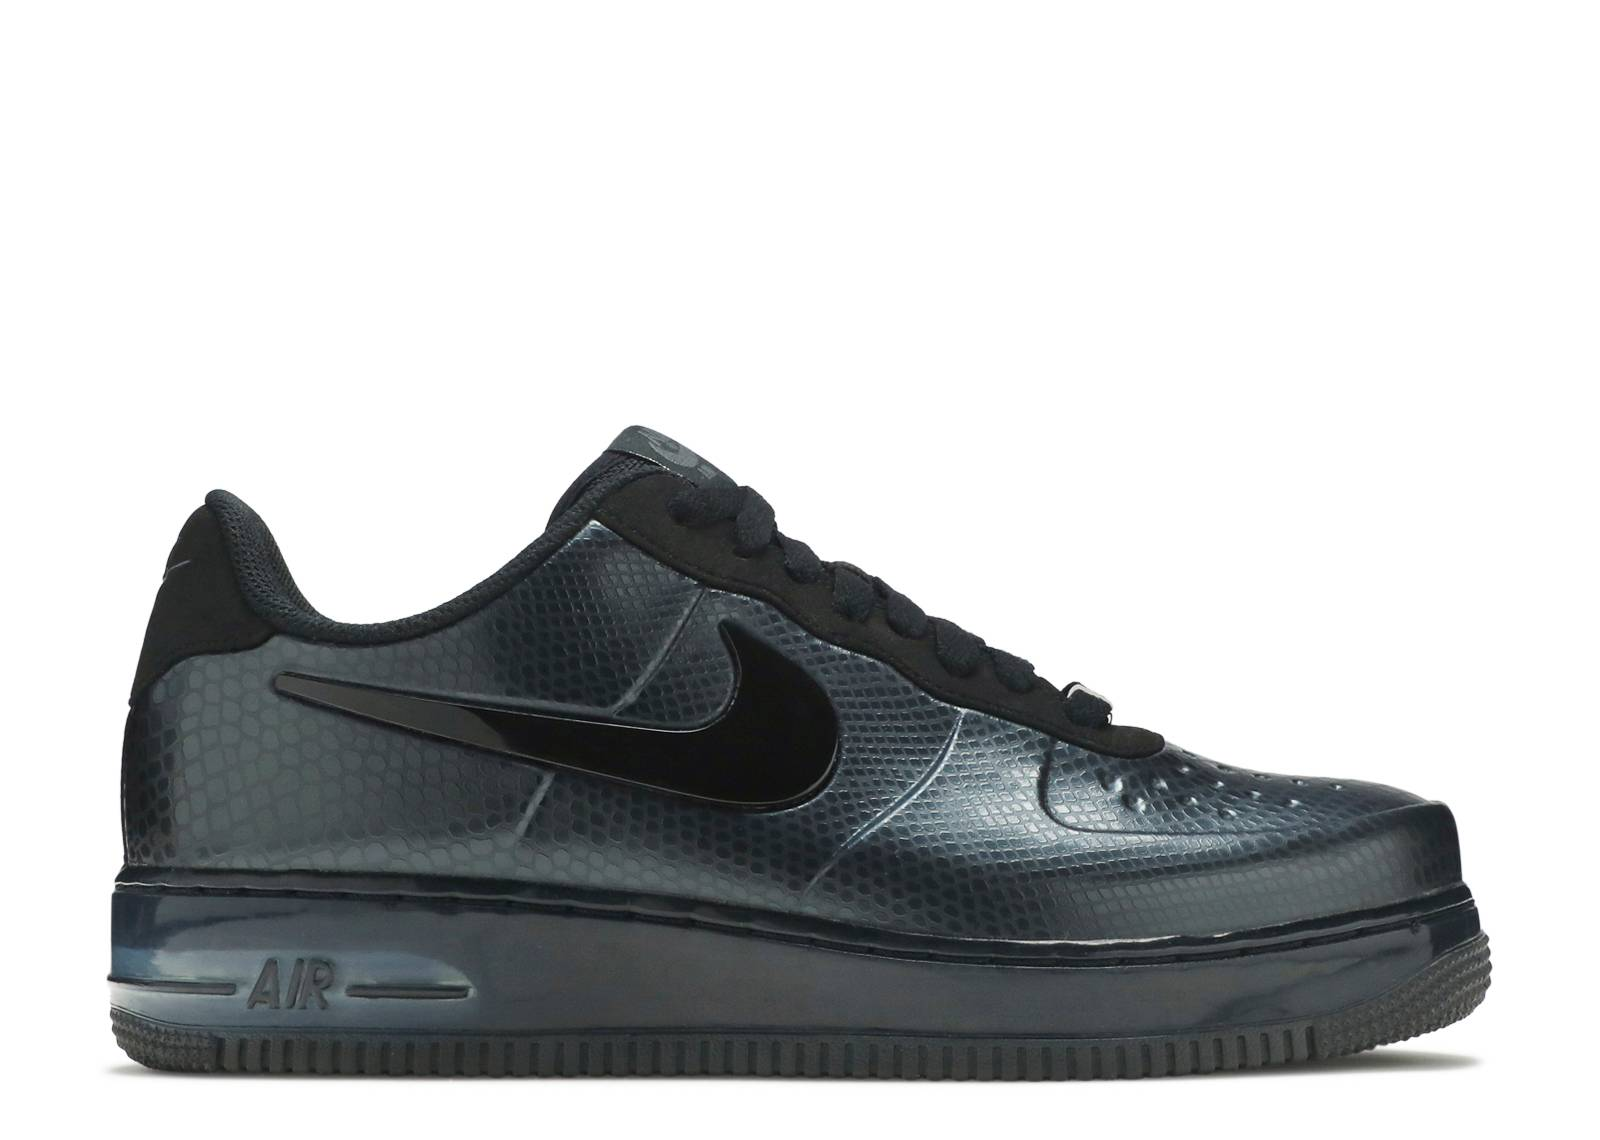 dc734f371a200 nike air force 1 foamposite pro low black snake for sale christmas